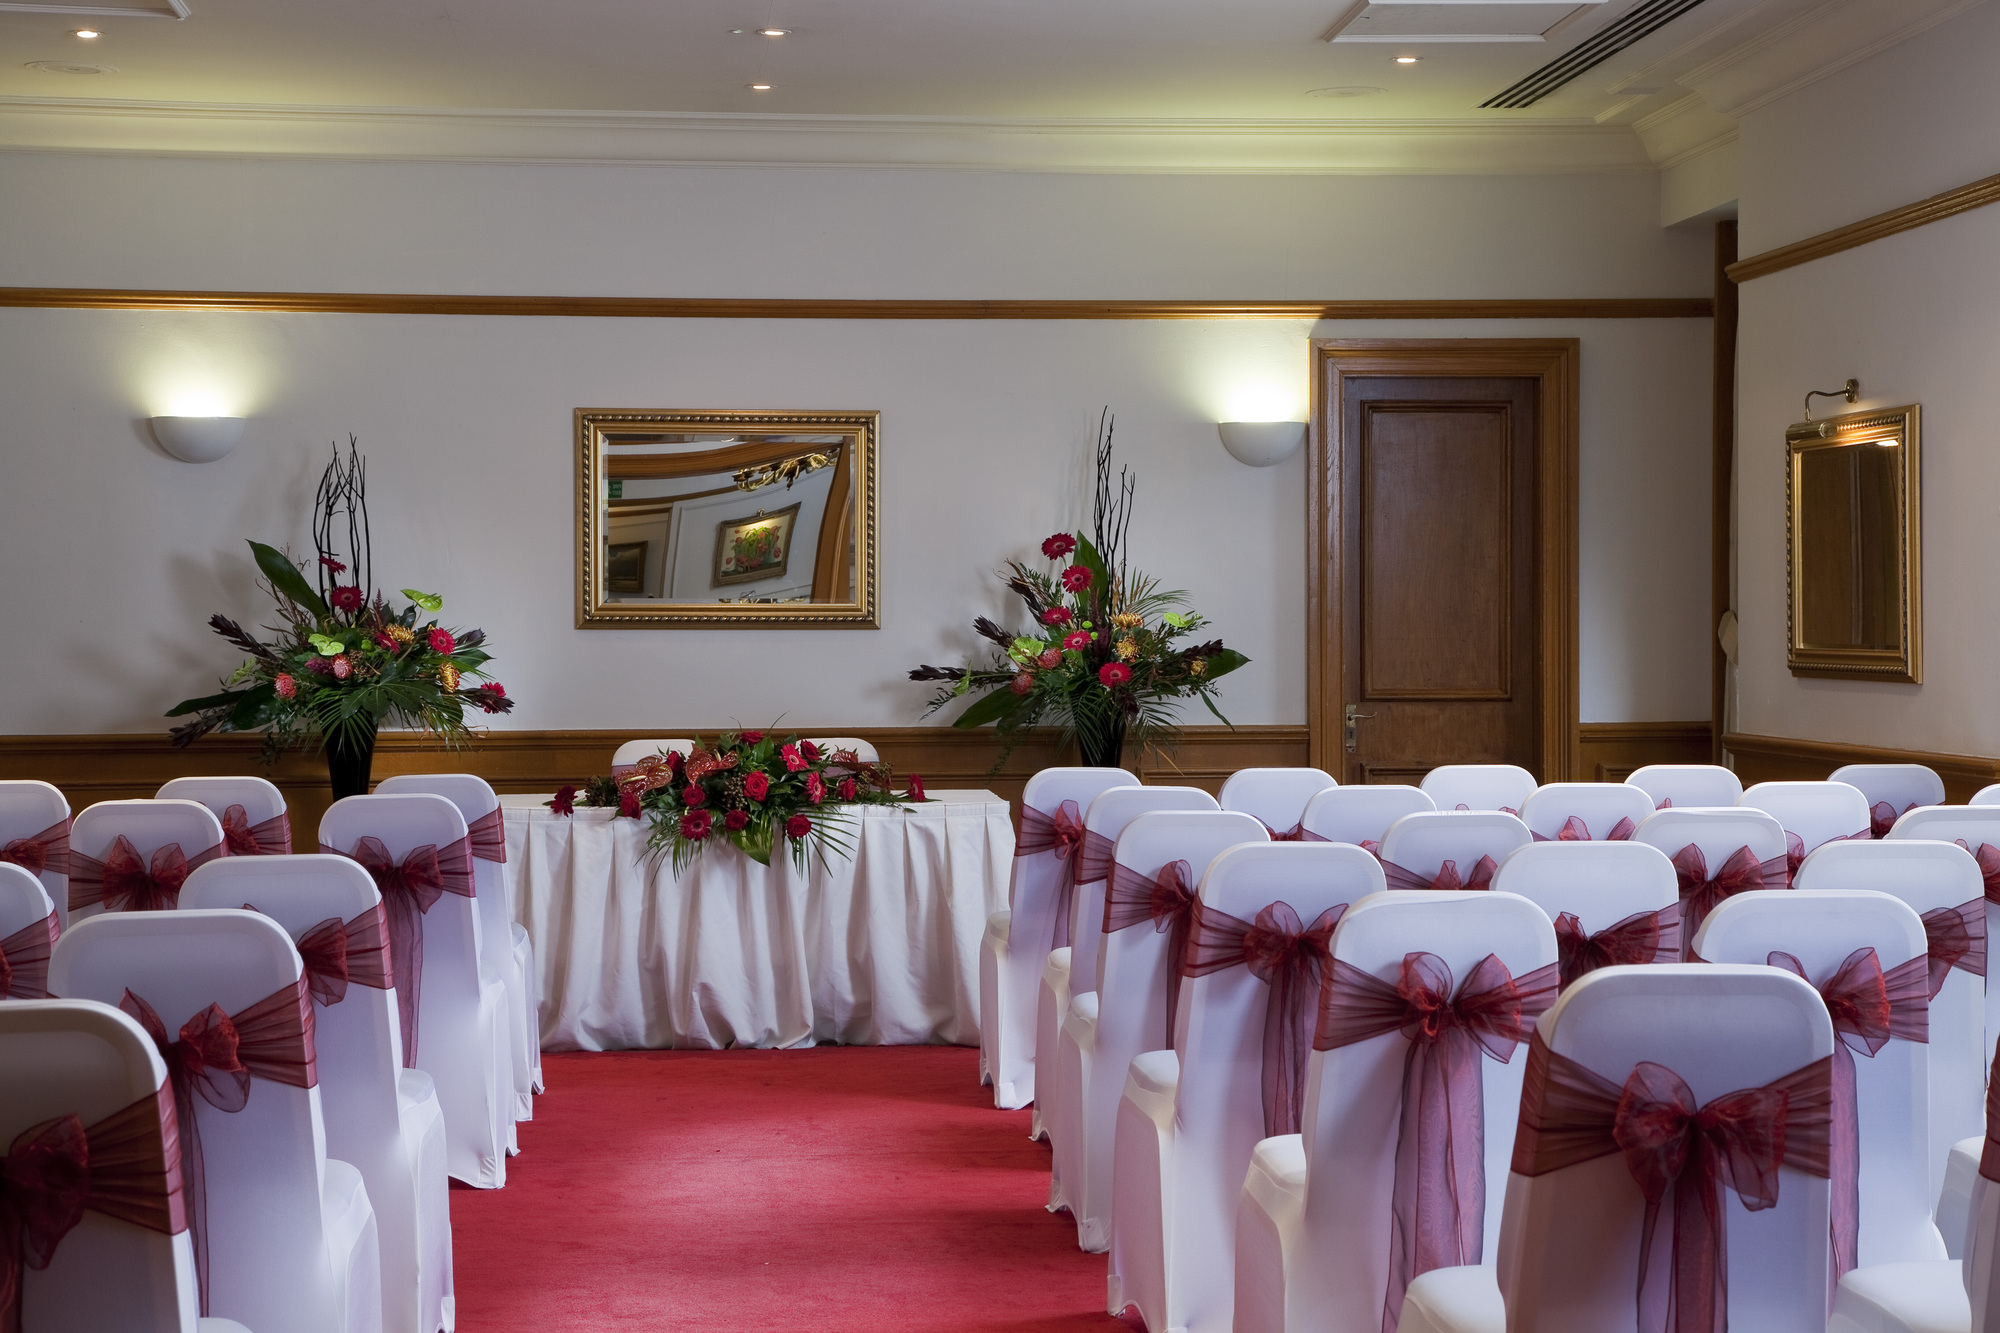 Holiday Inn Maidstone-Sevenoaks, Wedding Ceremony And